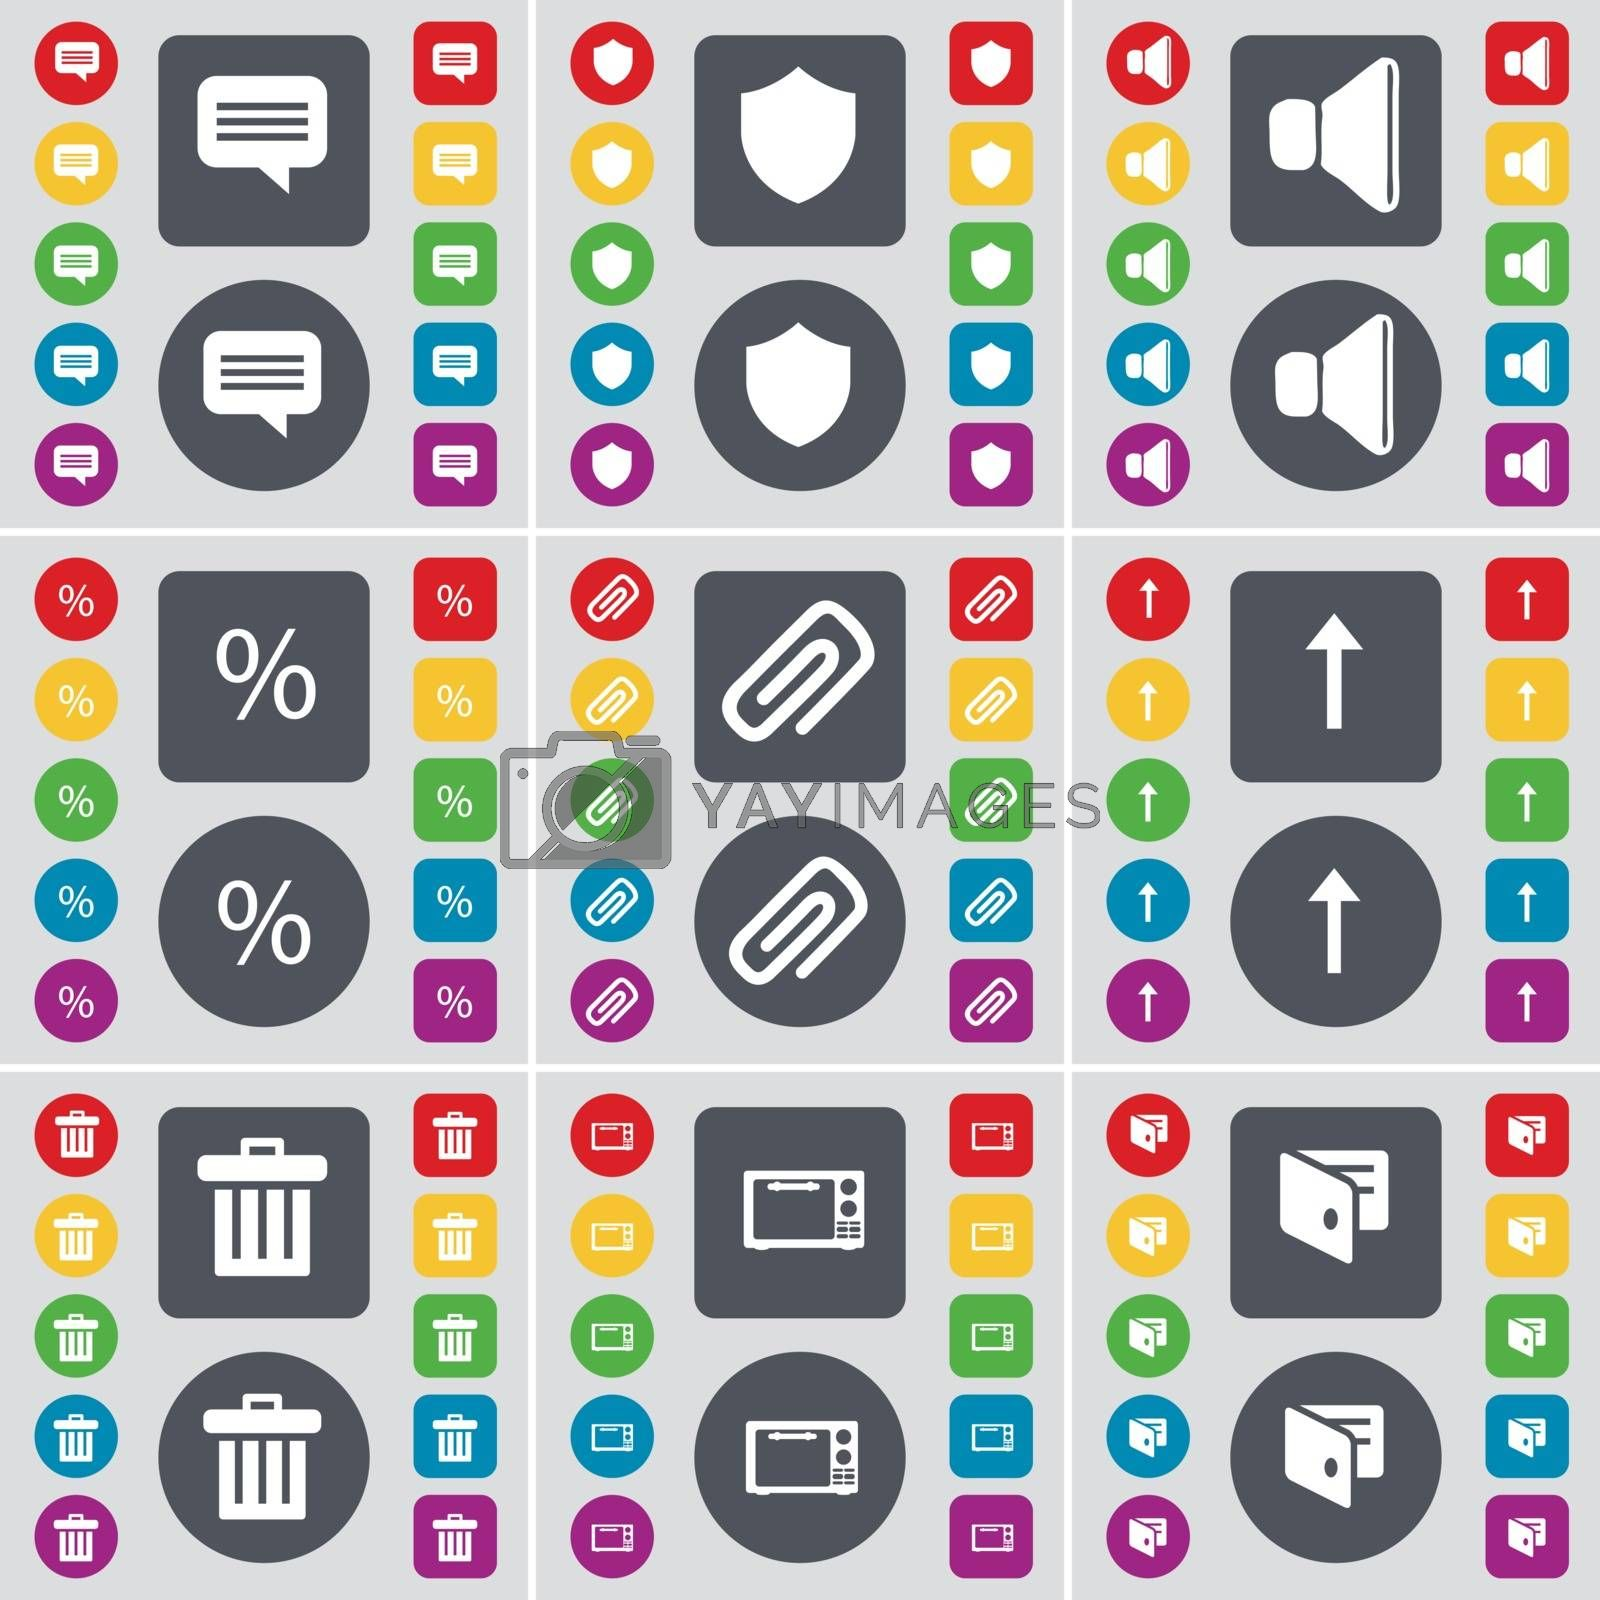 Royalty free image of Chat bubble, Badge, Sound, Percent, Clip, Arrow up, Trash can, Microwave, Wallet icon symbol. A large set of flat, colored buttons for your design. Vector by serhii_lohvyniuk